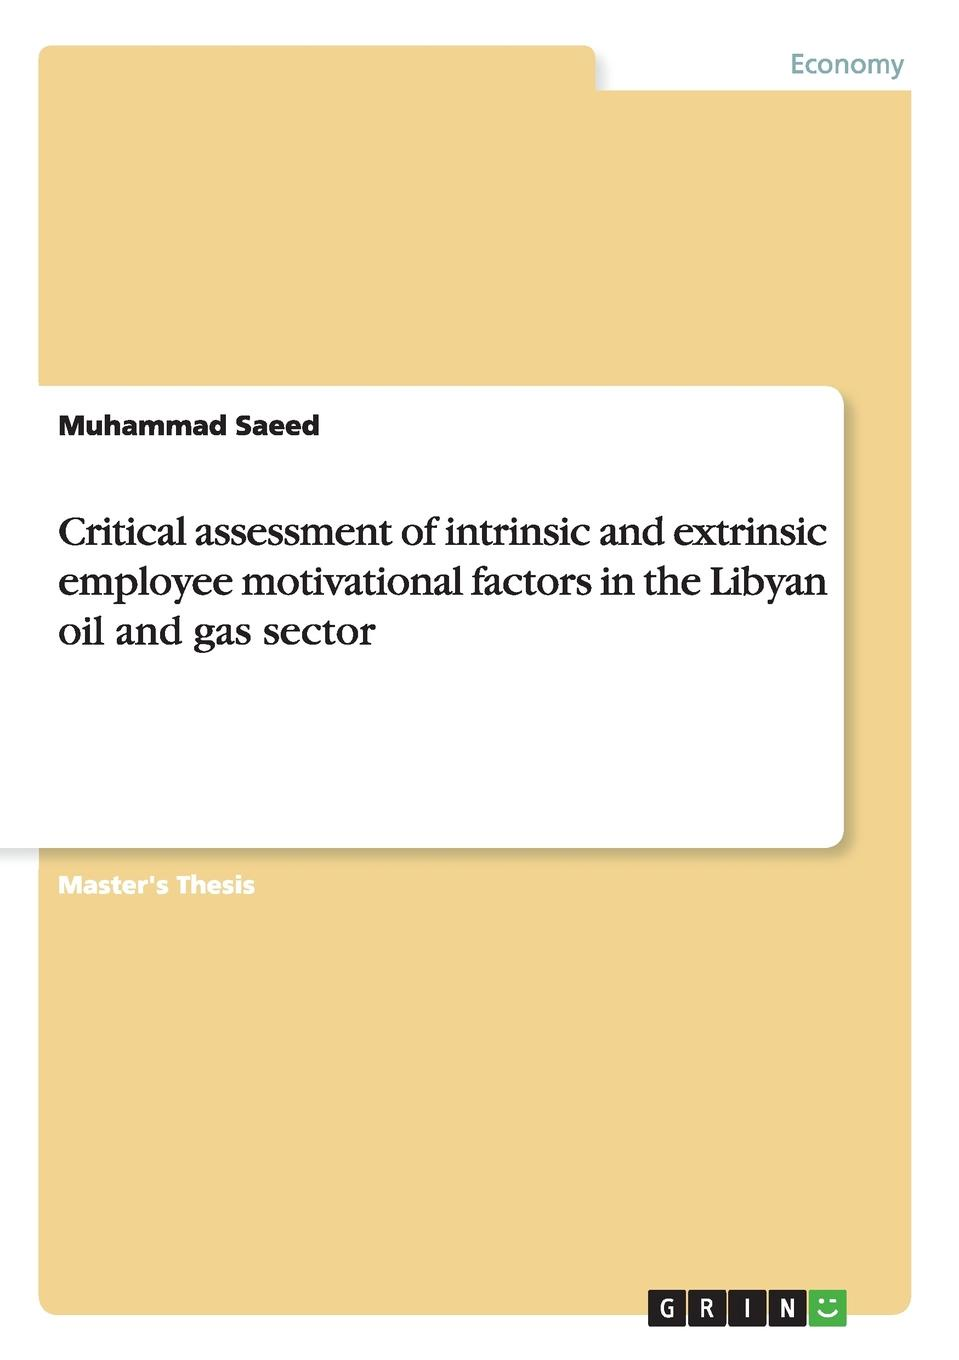 Muhammad Saeed Critical assessment of intrinsic and extrinsic employee motivational factors in the Libyan oil and gas sector motivation and action